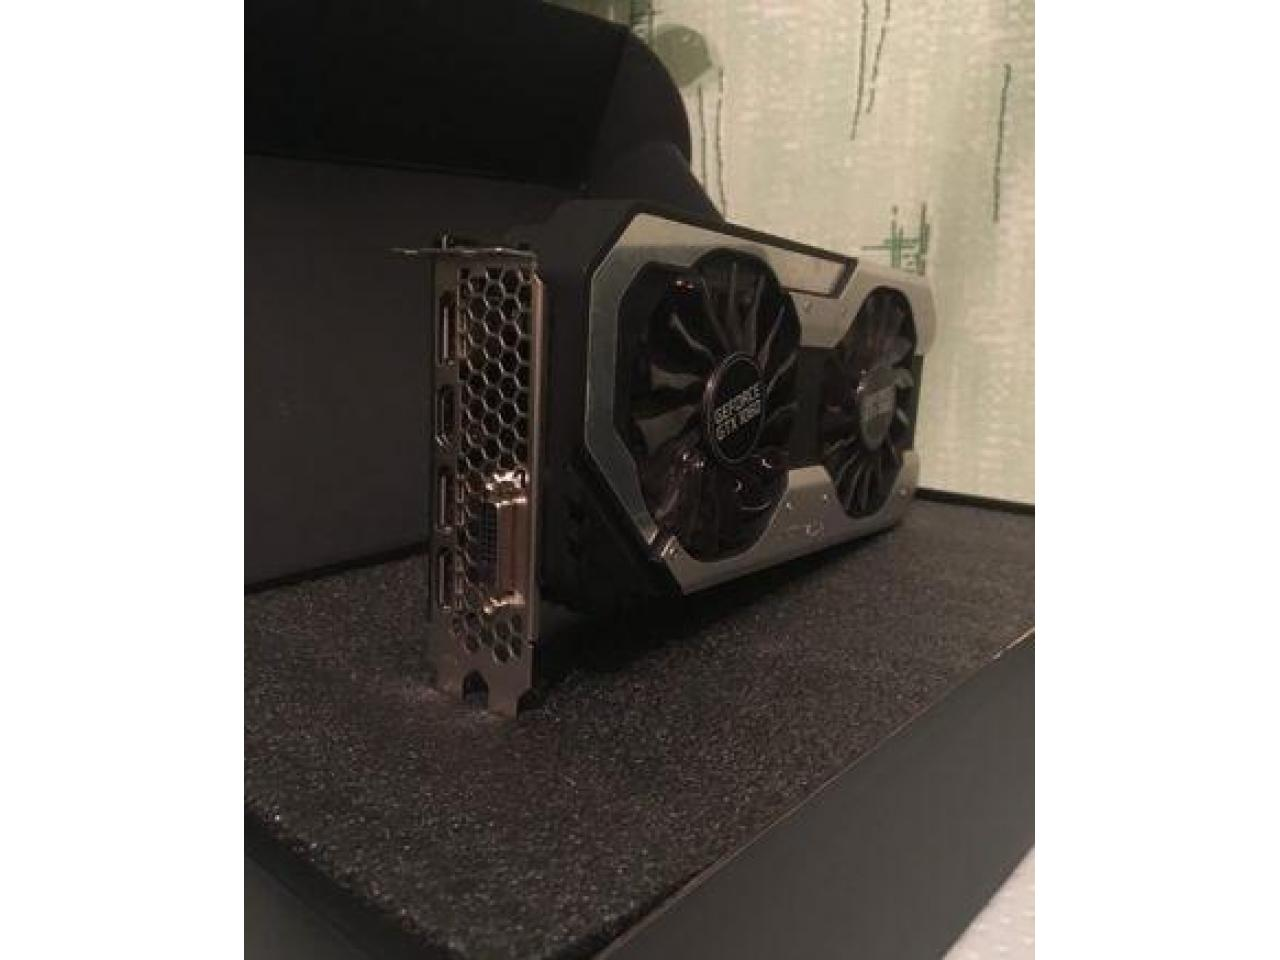 Видеокарта Palit JetStream GTX 1060 3GB / Гарантия - 2/4